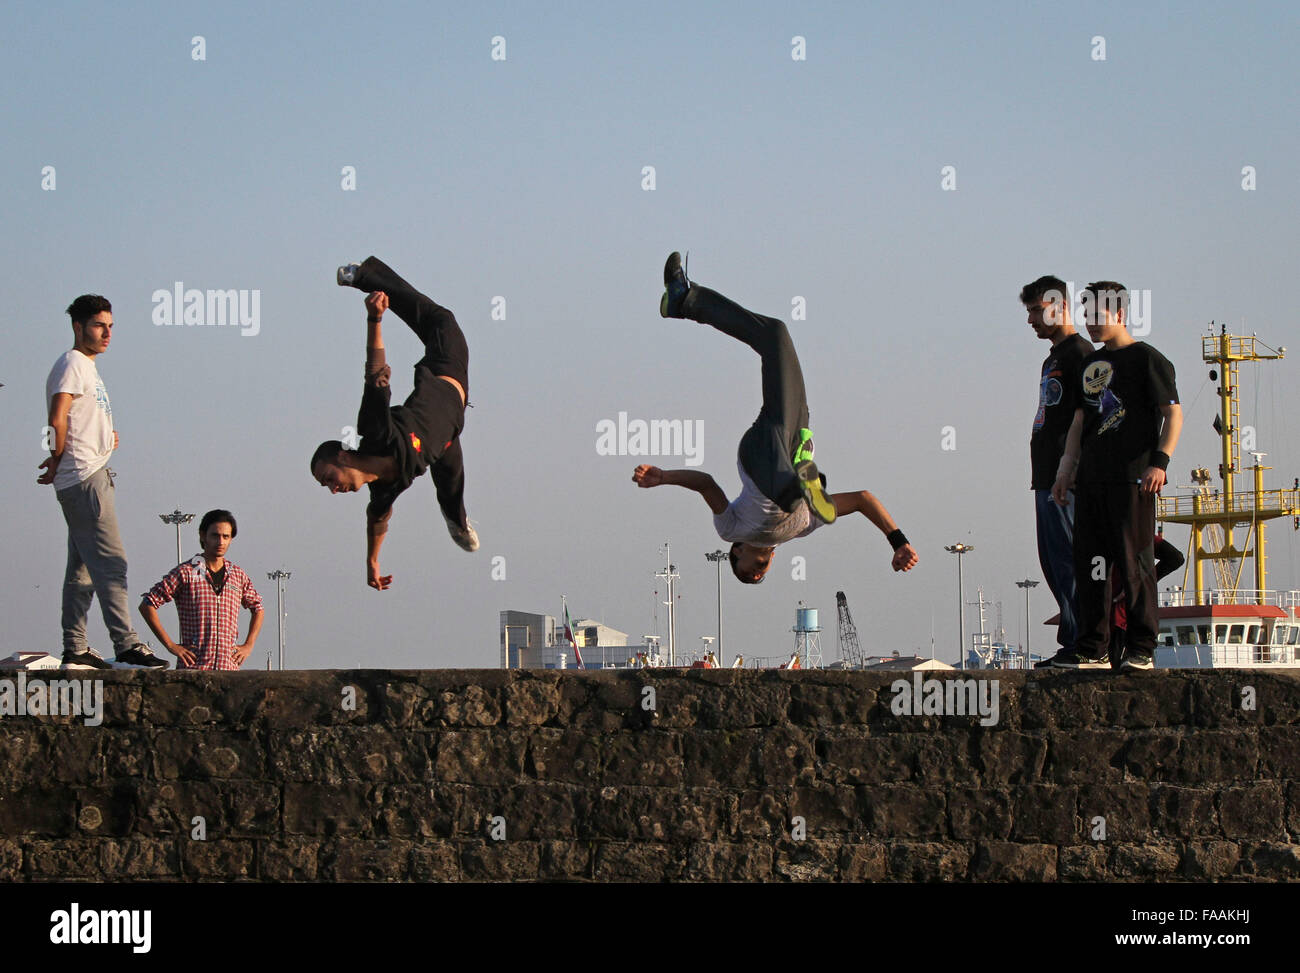 Anzali Port, Iran. 24th Dec, 2015. Iranian teens practice parkour in Anzali Port in Gilan province, northern Iran, Stock Photo